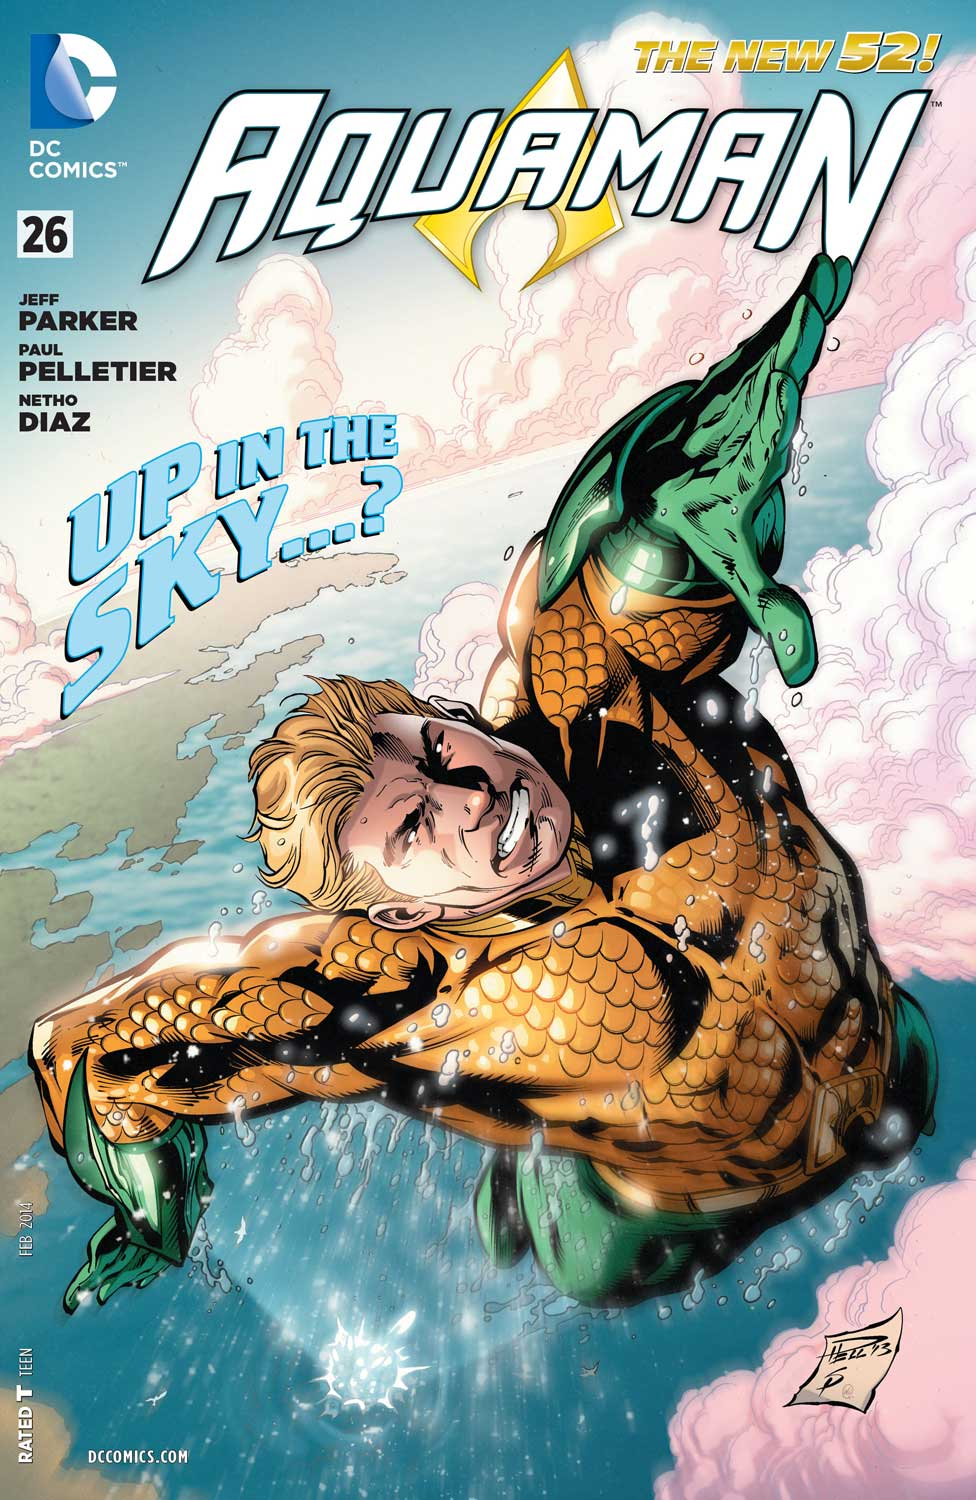 Aquaman #26 cover by Paul Pelletier and Sean Parsons